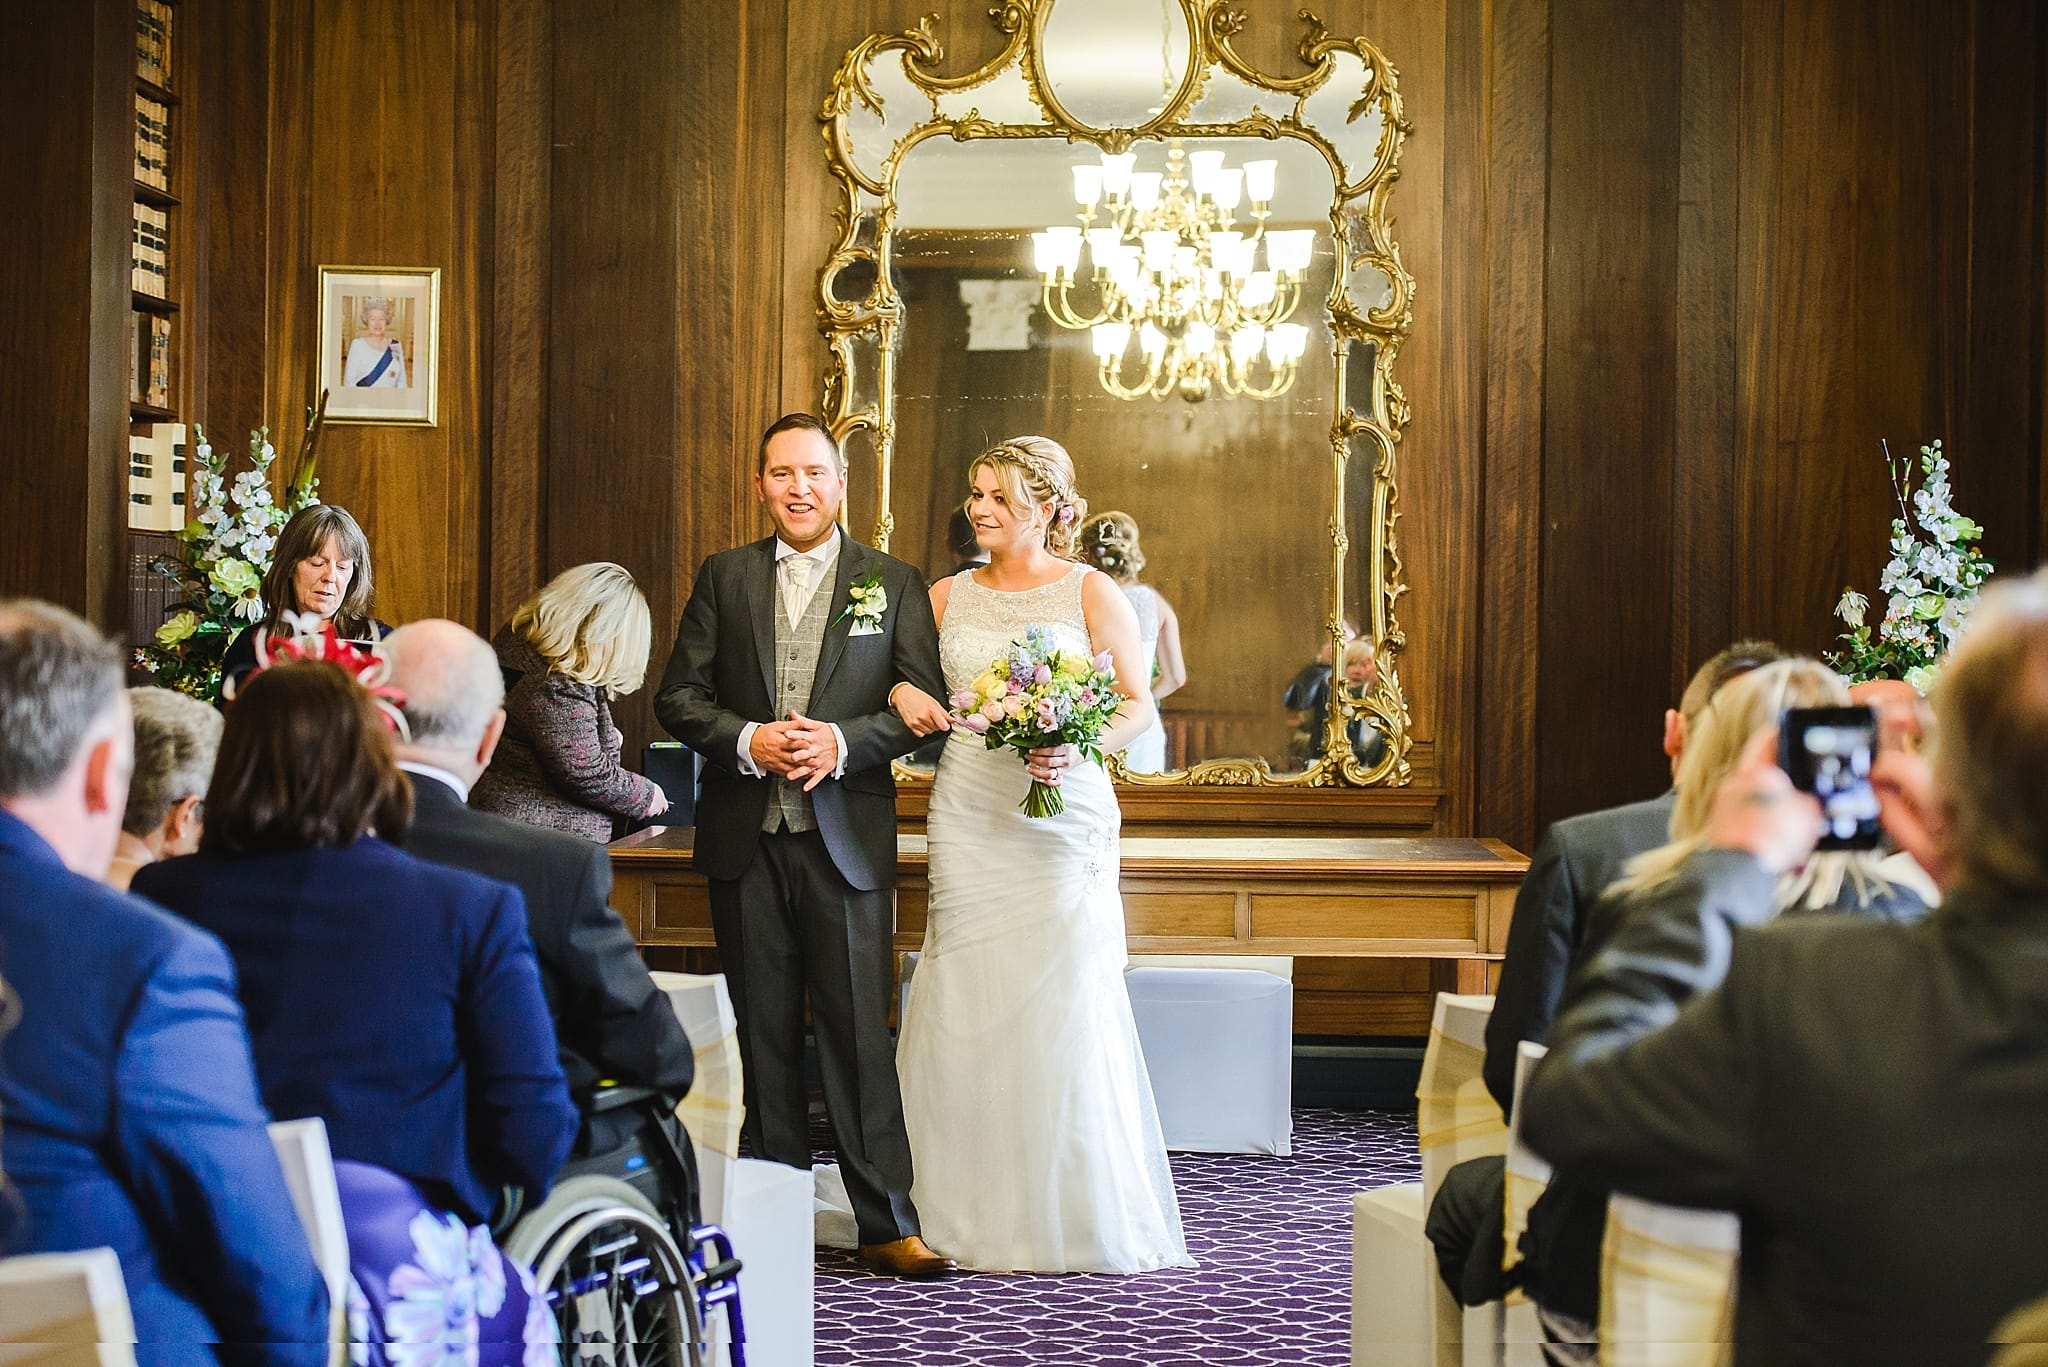 Bride and groom stood in the members room at Trowbridge registry office